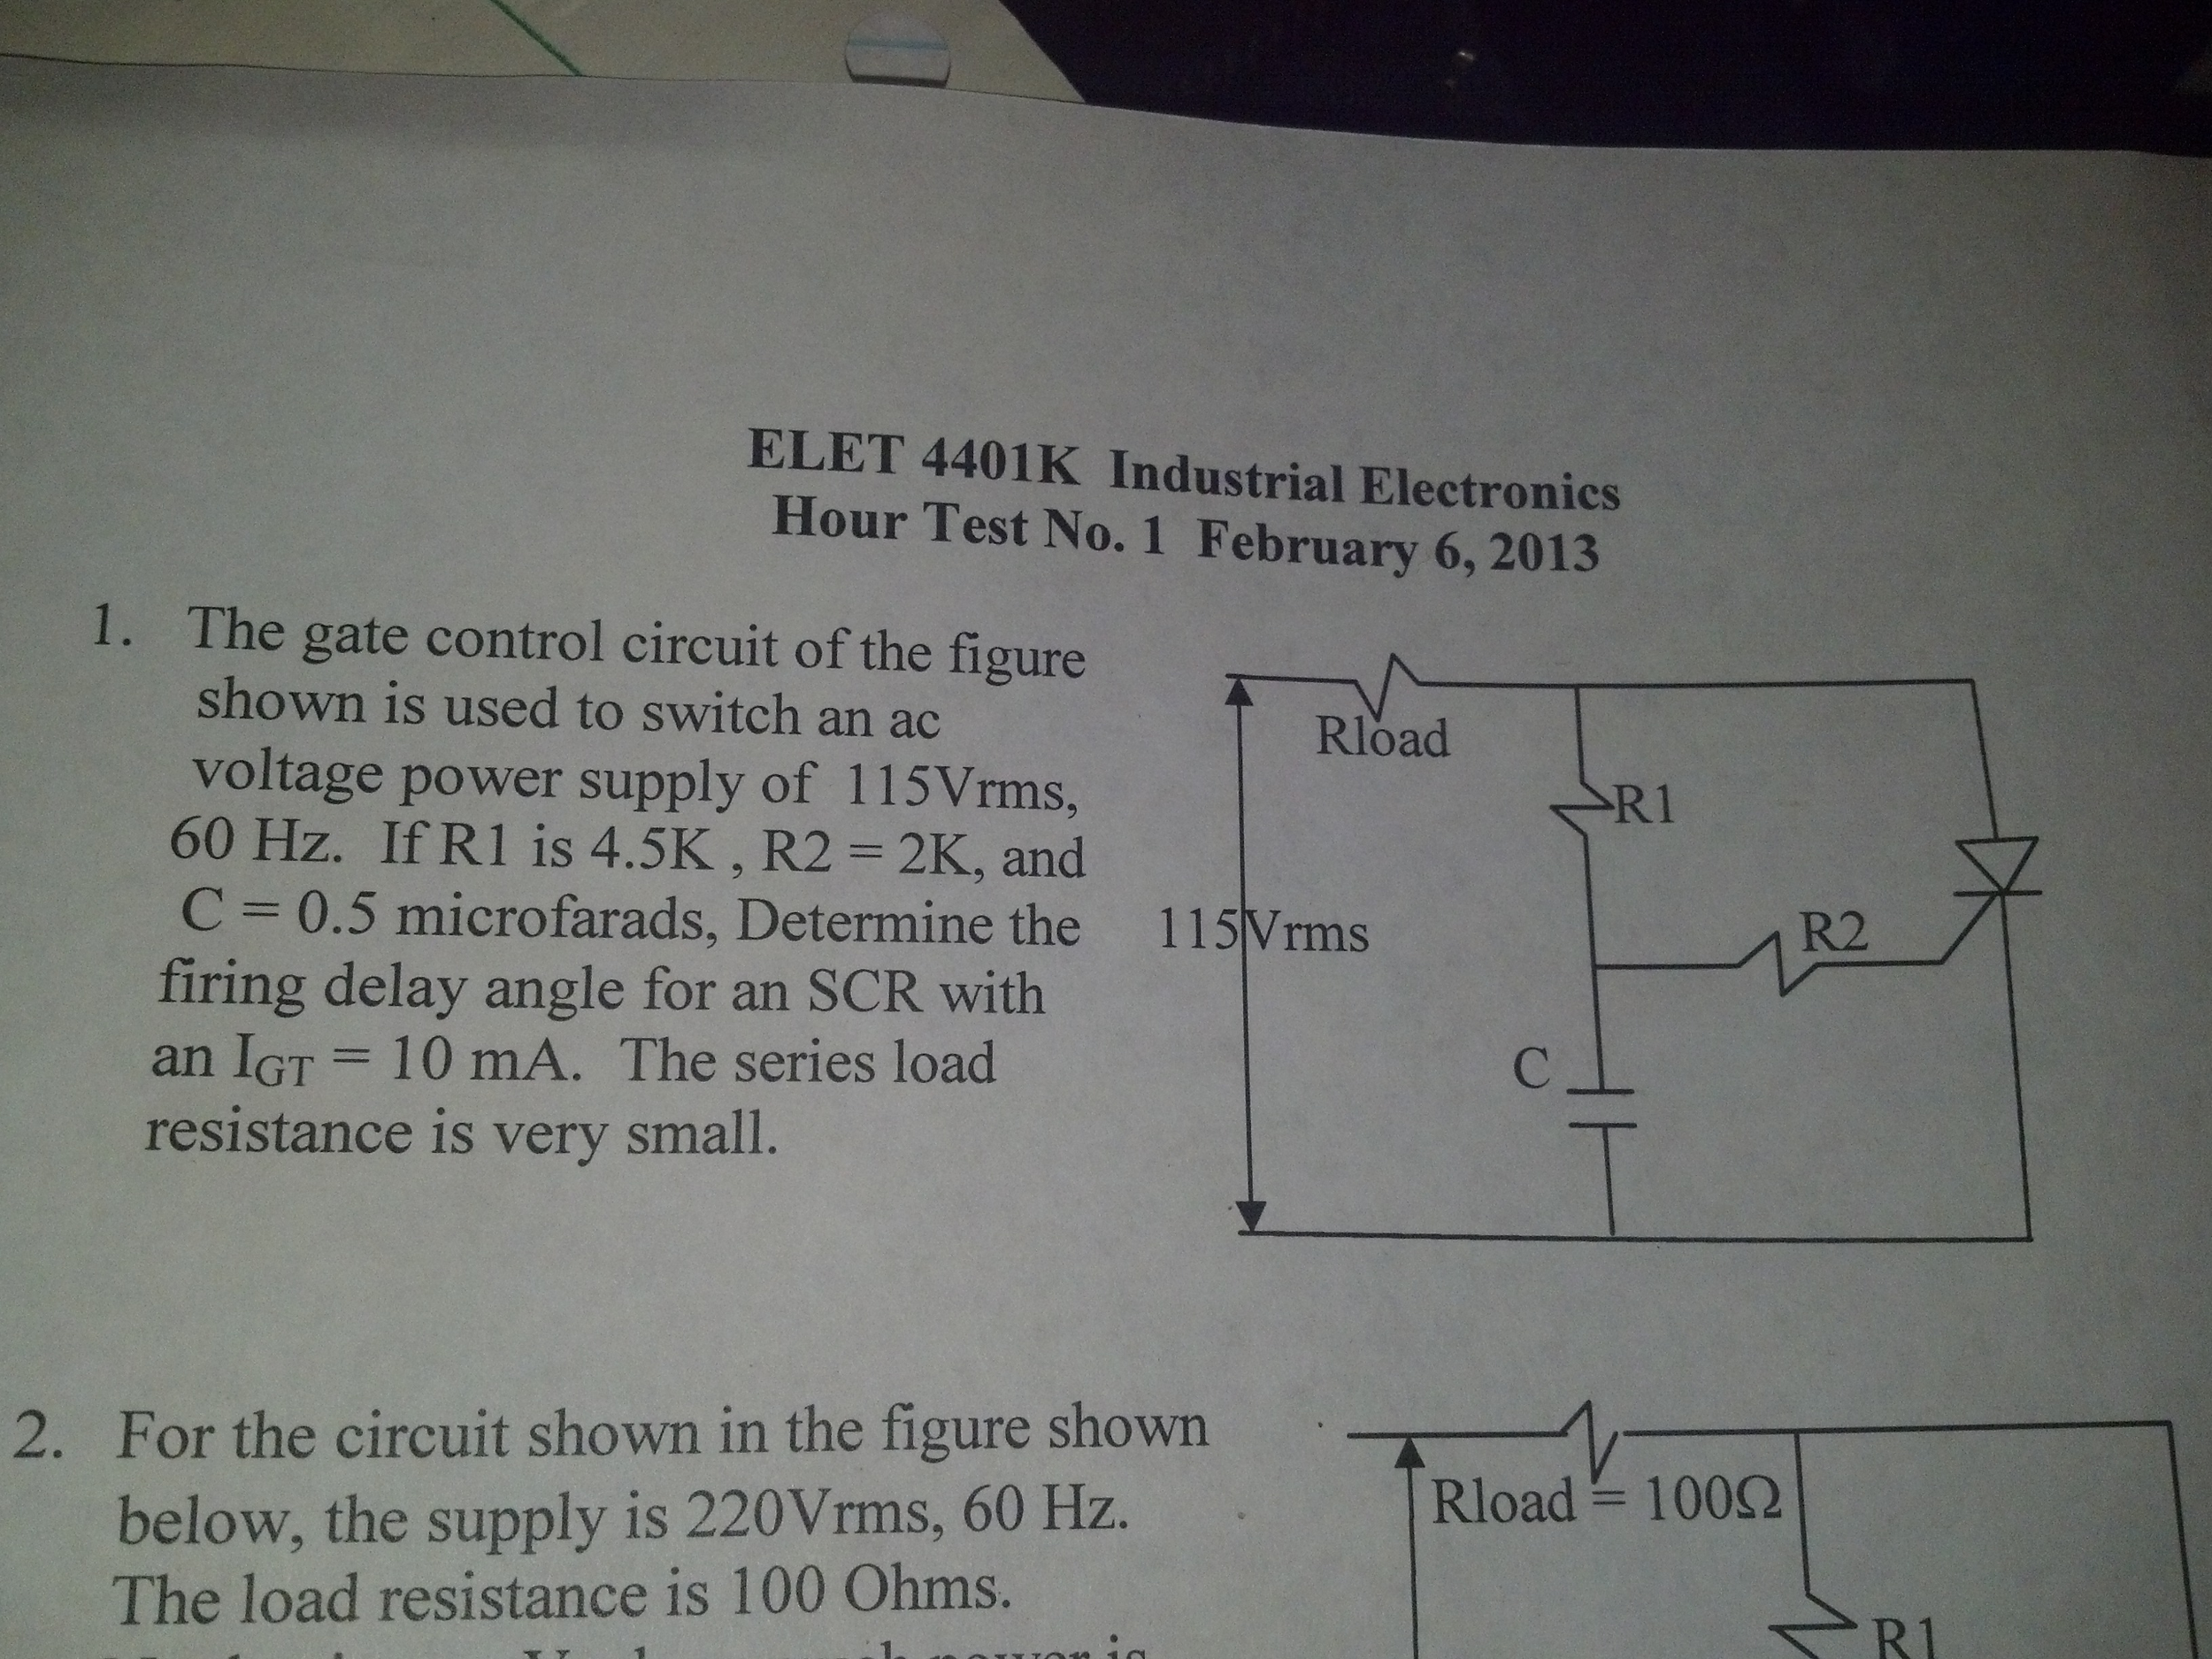 ELET 4401K Industrial Electronics Hour Test No. 1